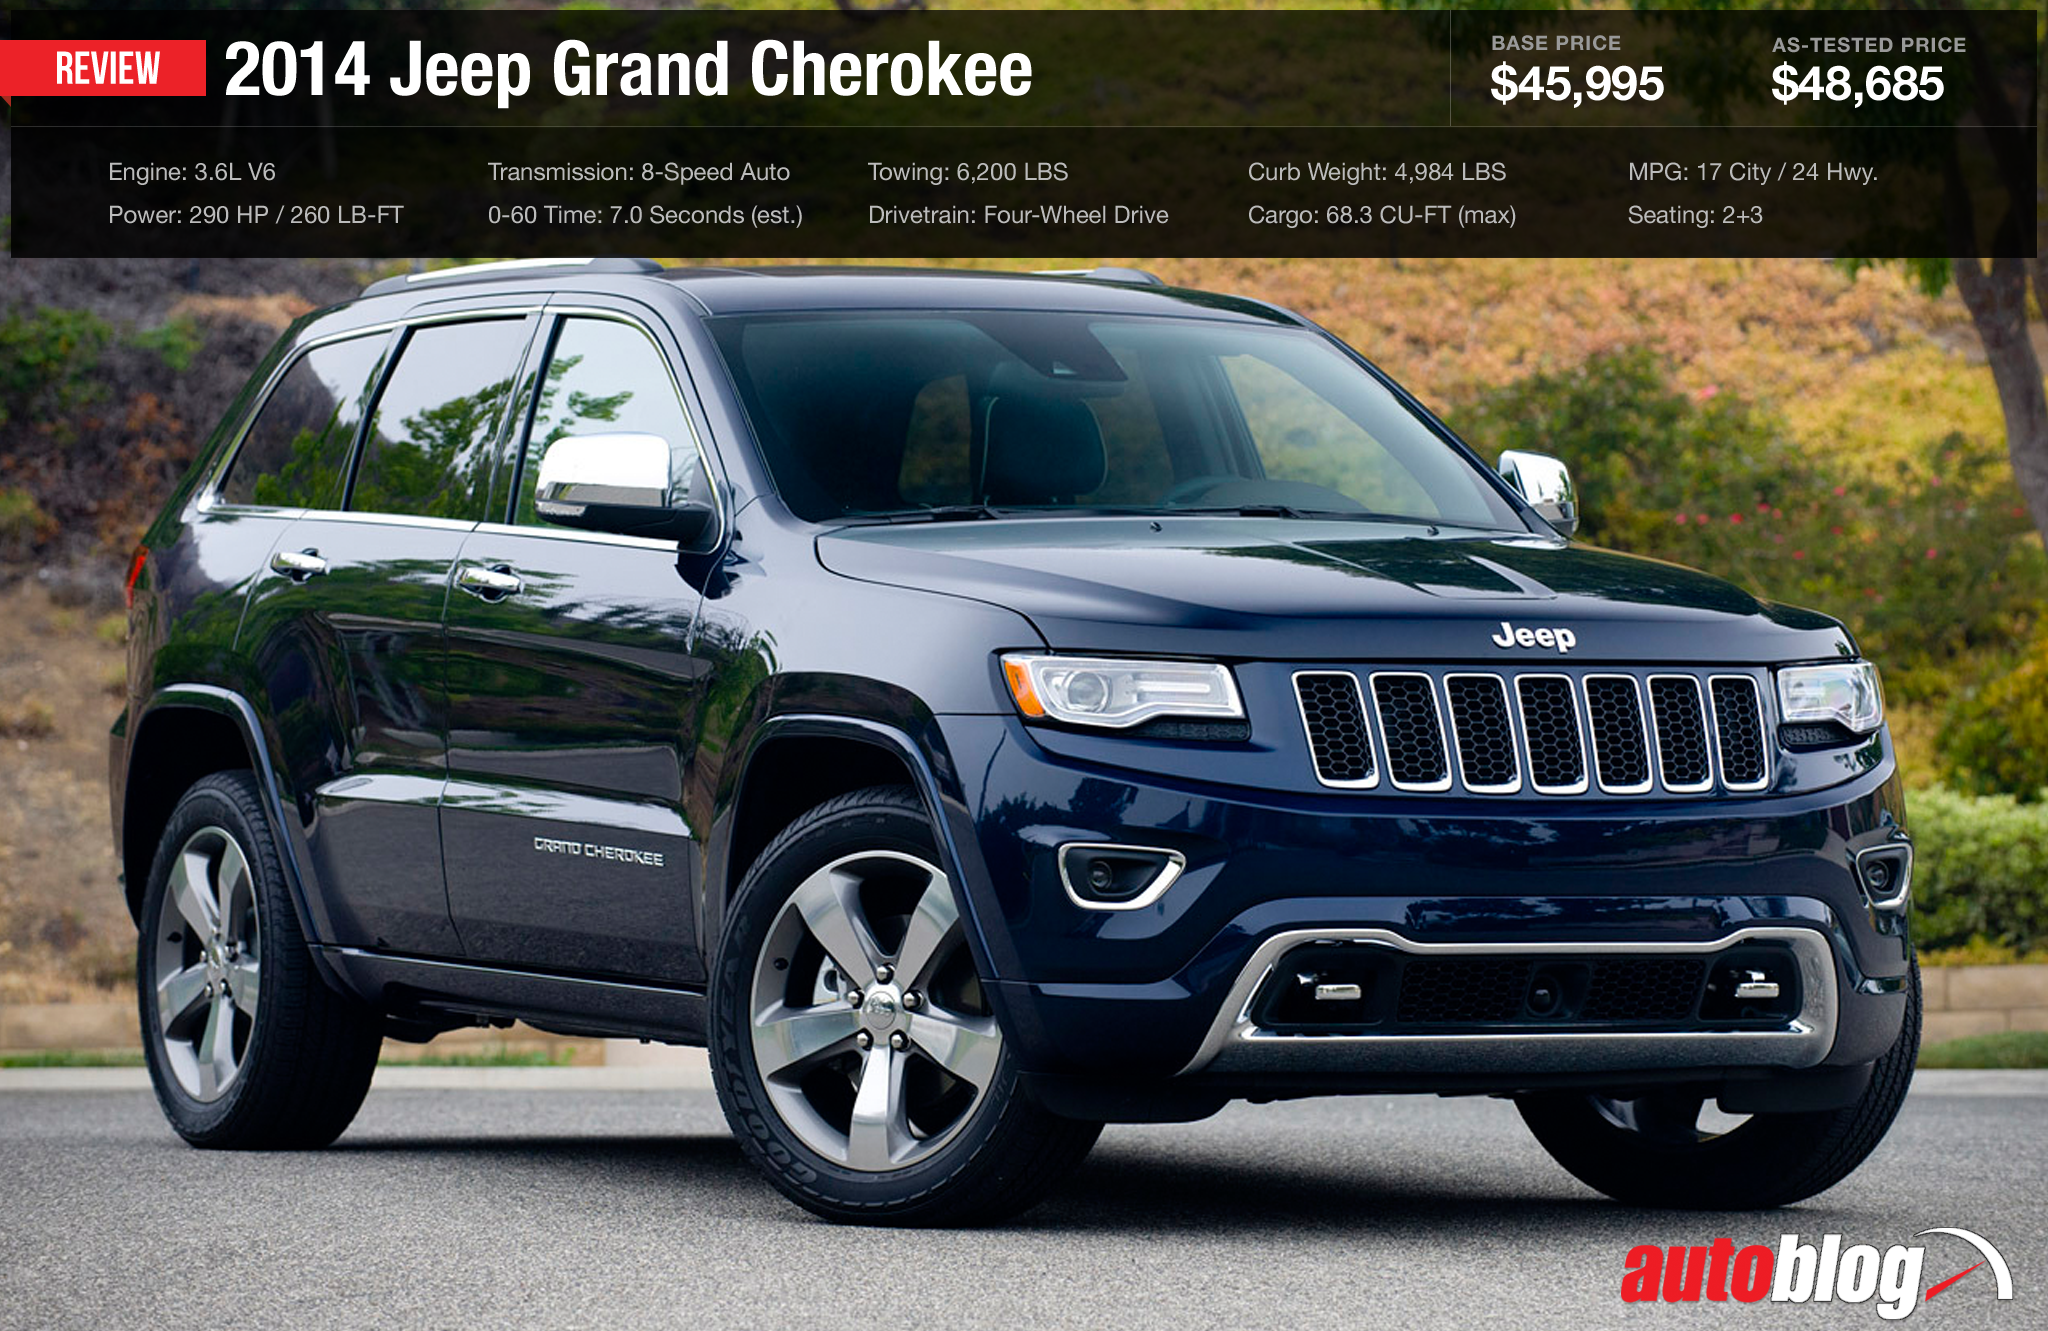 It Appears That Jeep Has Finally Delivered One Of The Best Overall Vehicles In The Midsize Suv Segment Our R Carros Y Camionetas Autos Y Motocicletas Autos